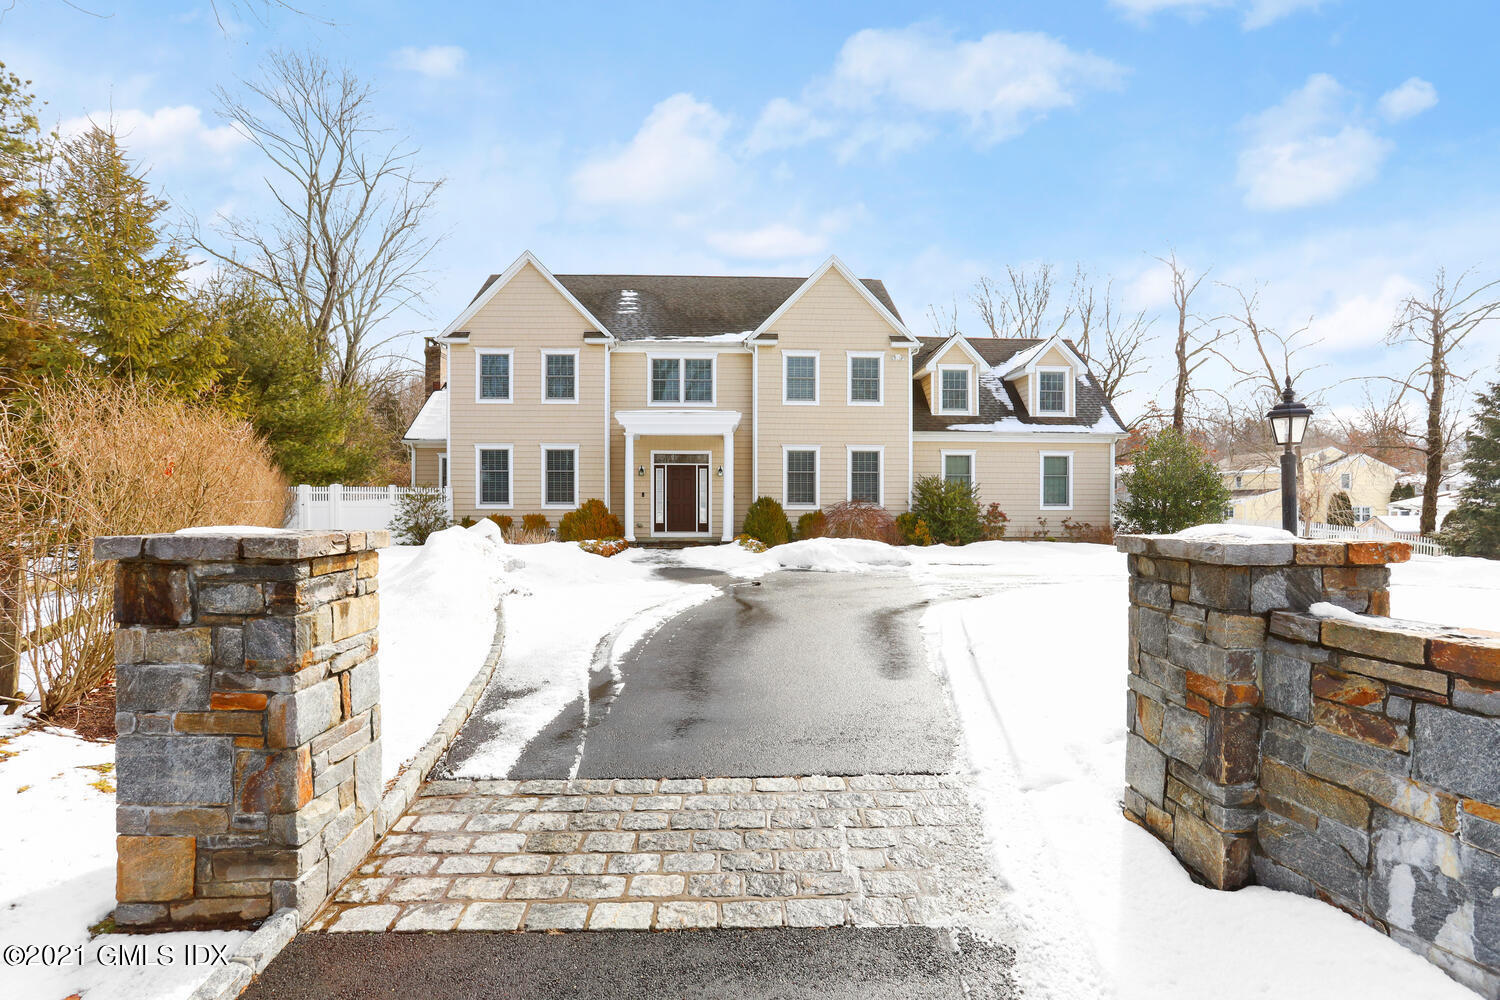 56 Old Orchard Road, Riverside, Connecticut 06878, 4 Bedrooms Bedrooms, ,4 BathroomsBathrooms,Single family,For sale,Old Orchard,112275